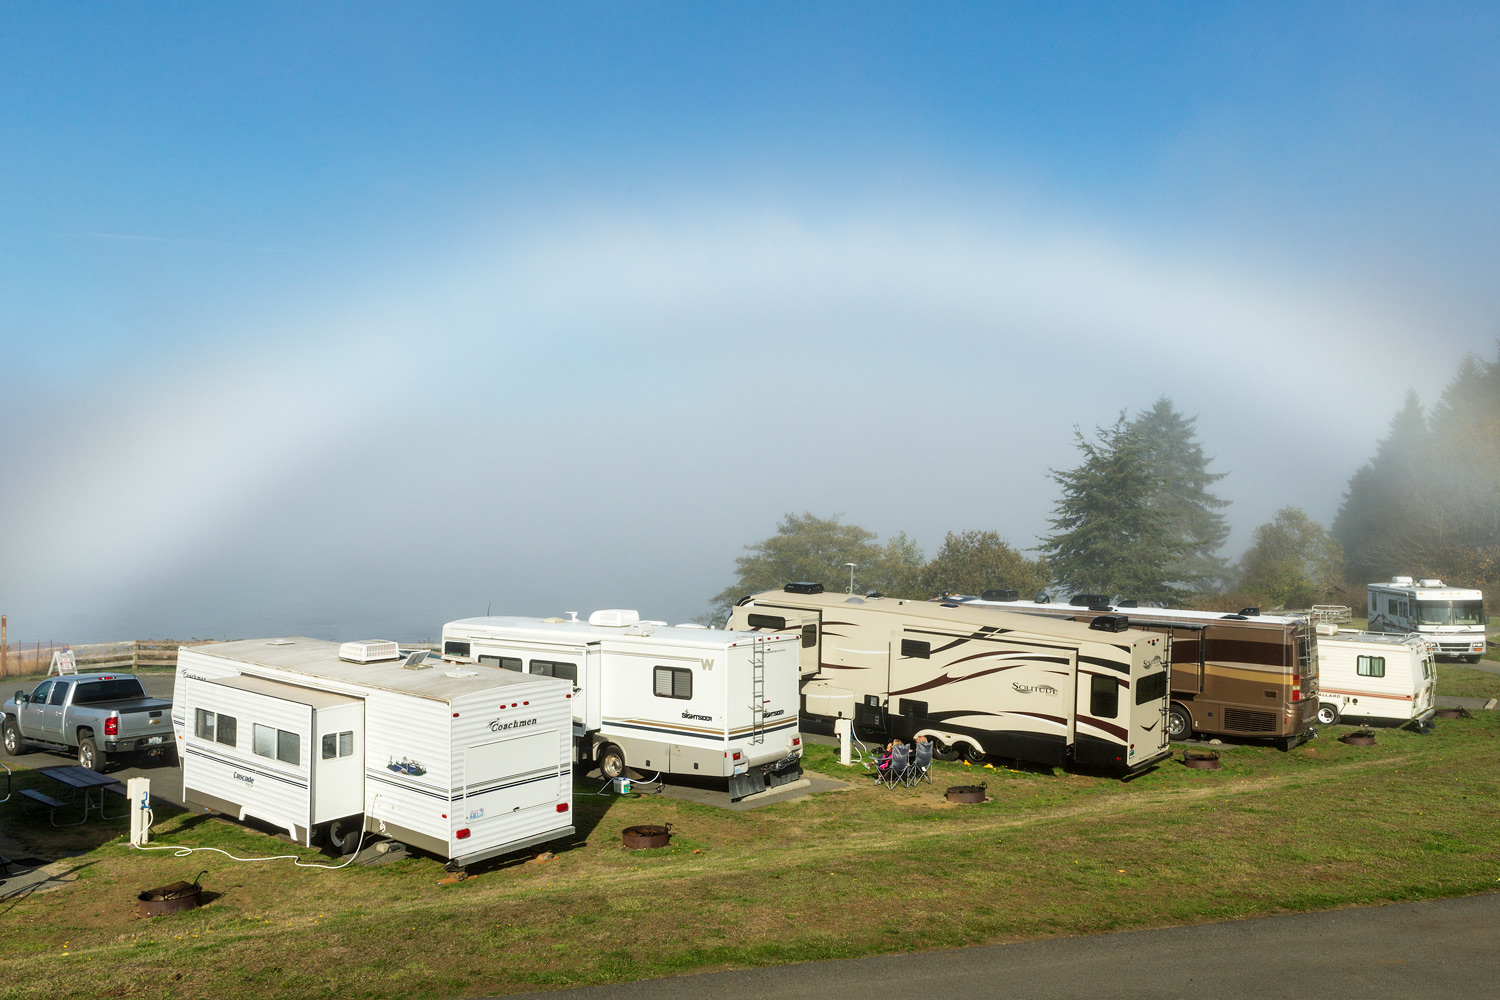 Fogbow (It's a real thing). Juan De Fuca Straits, WA